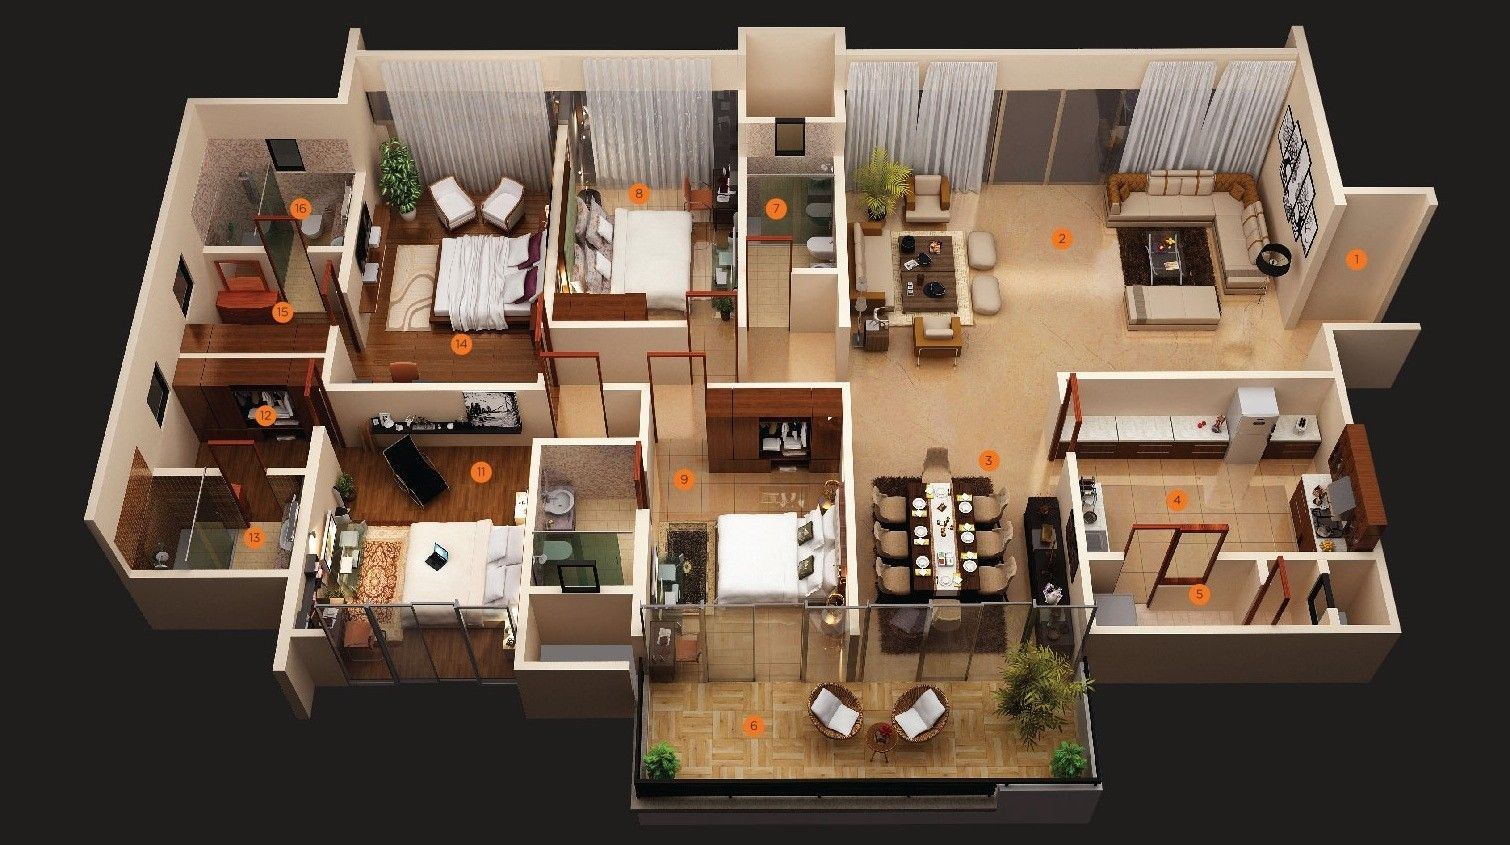 4 Bedroom Apartment House Plans Inside Floor Four Bedroom House